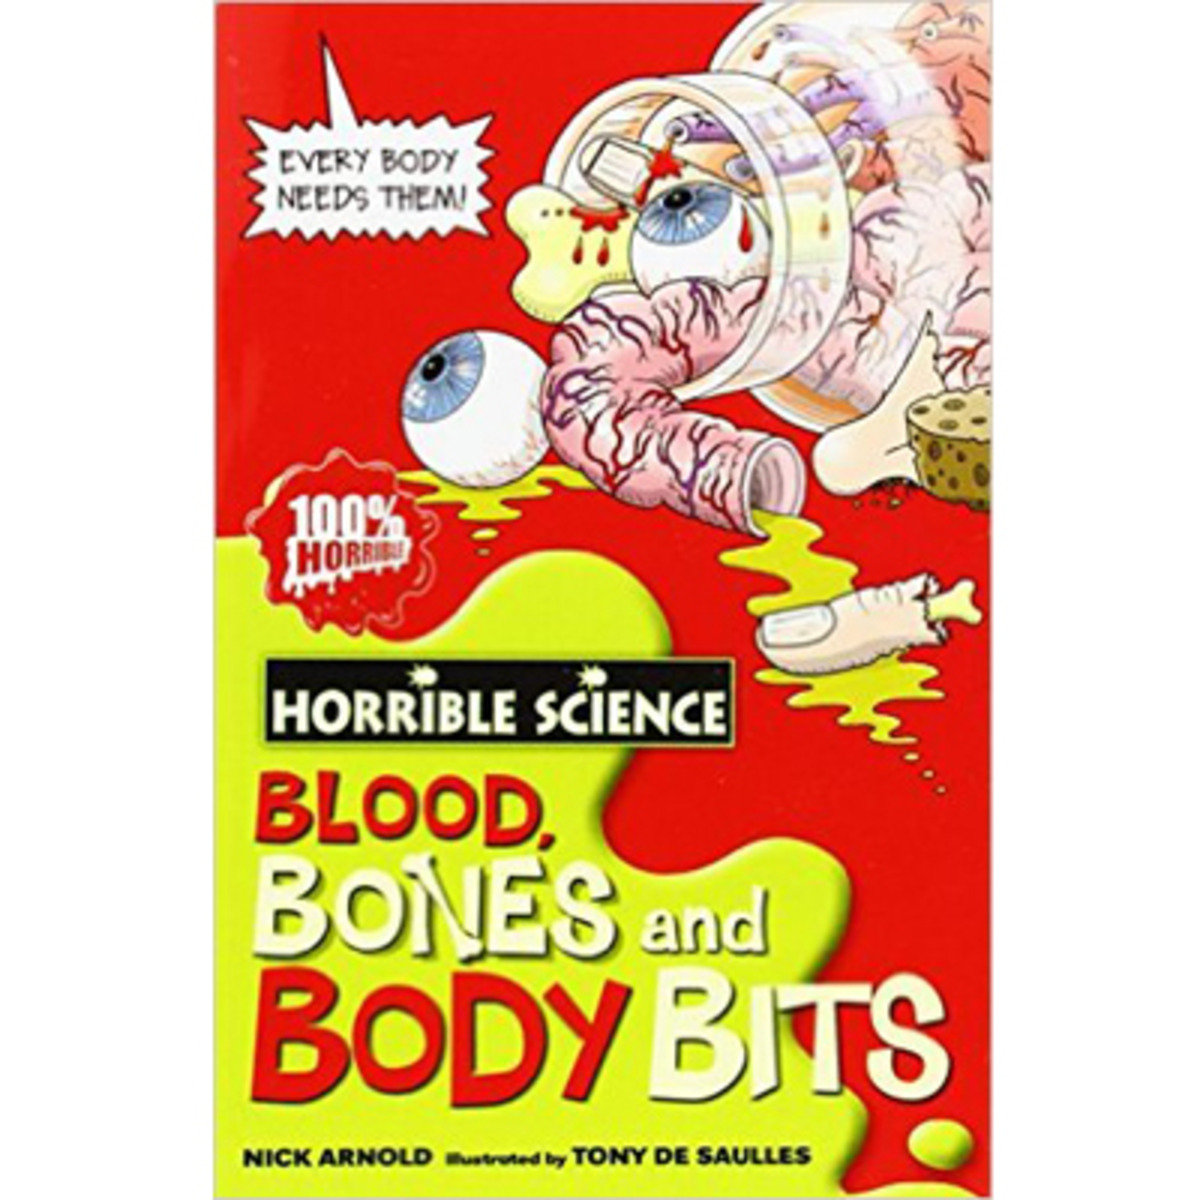 HORRIBLE SCIENCE: BLOOD, BONES AND BODY BITS 9780439944496